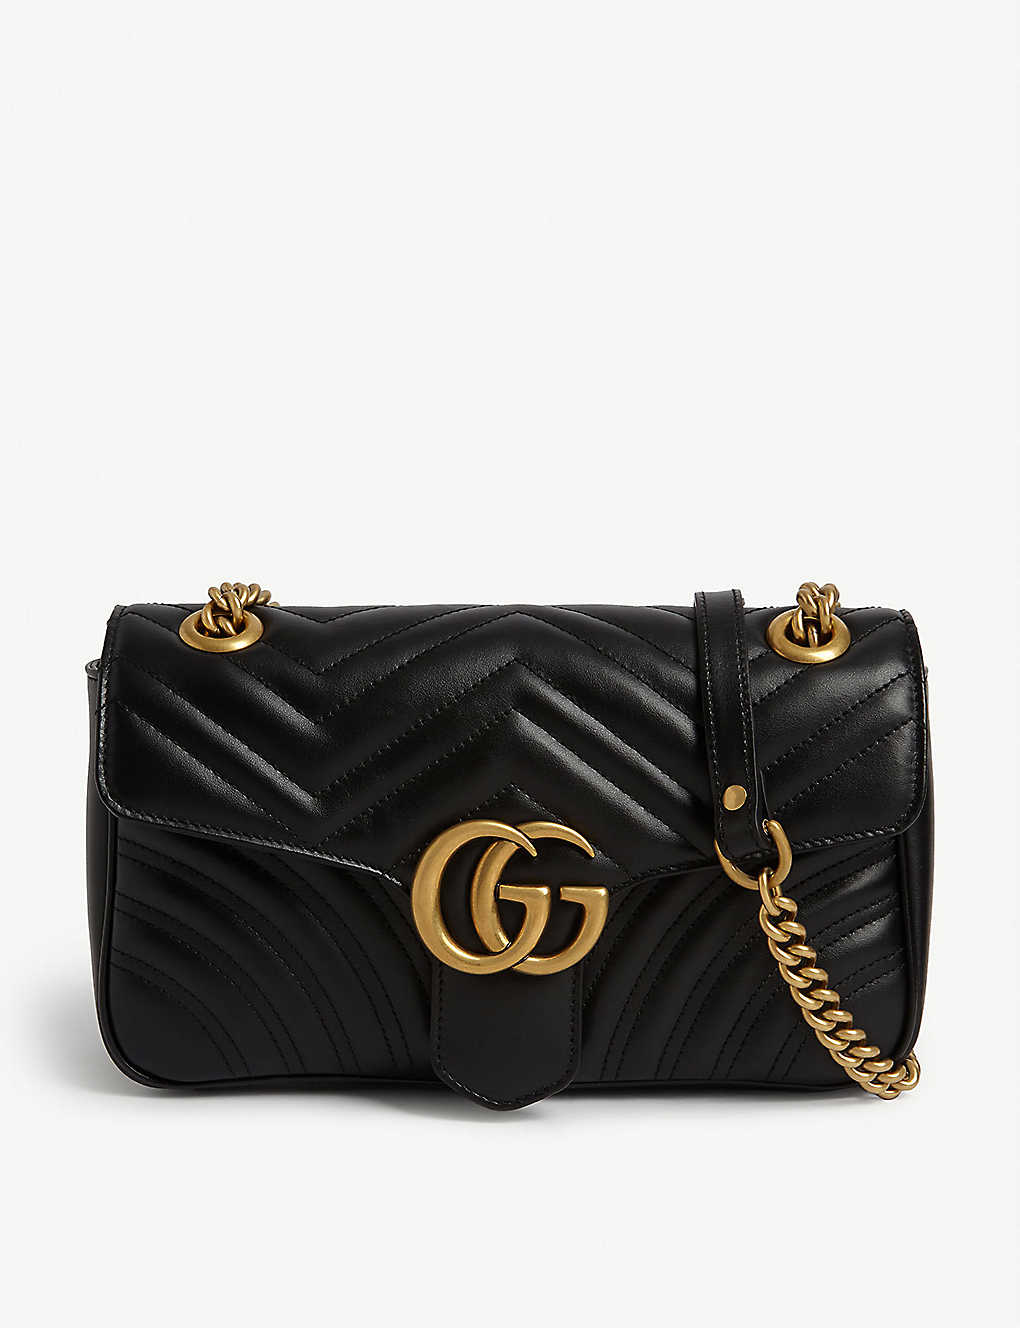 6481fa42287 GUCCI - Marmont leather shoulder bag